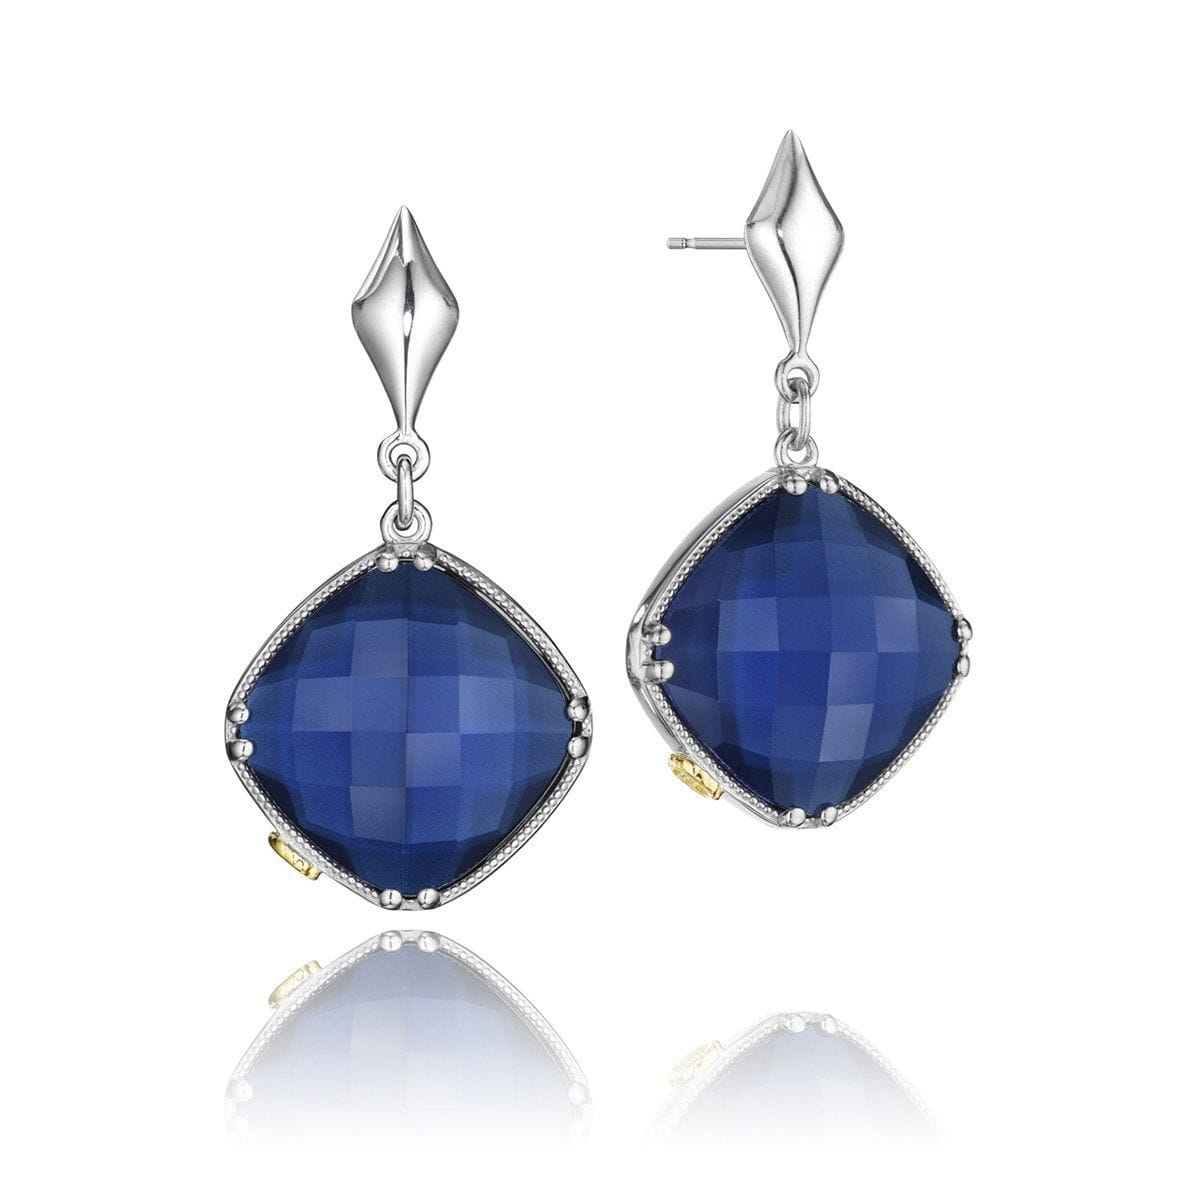 Silver Blue Quartz Over Hematite Earrings - SE16735-Tacori-Renee Taylor Gallery